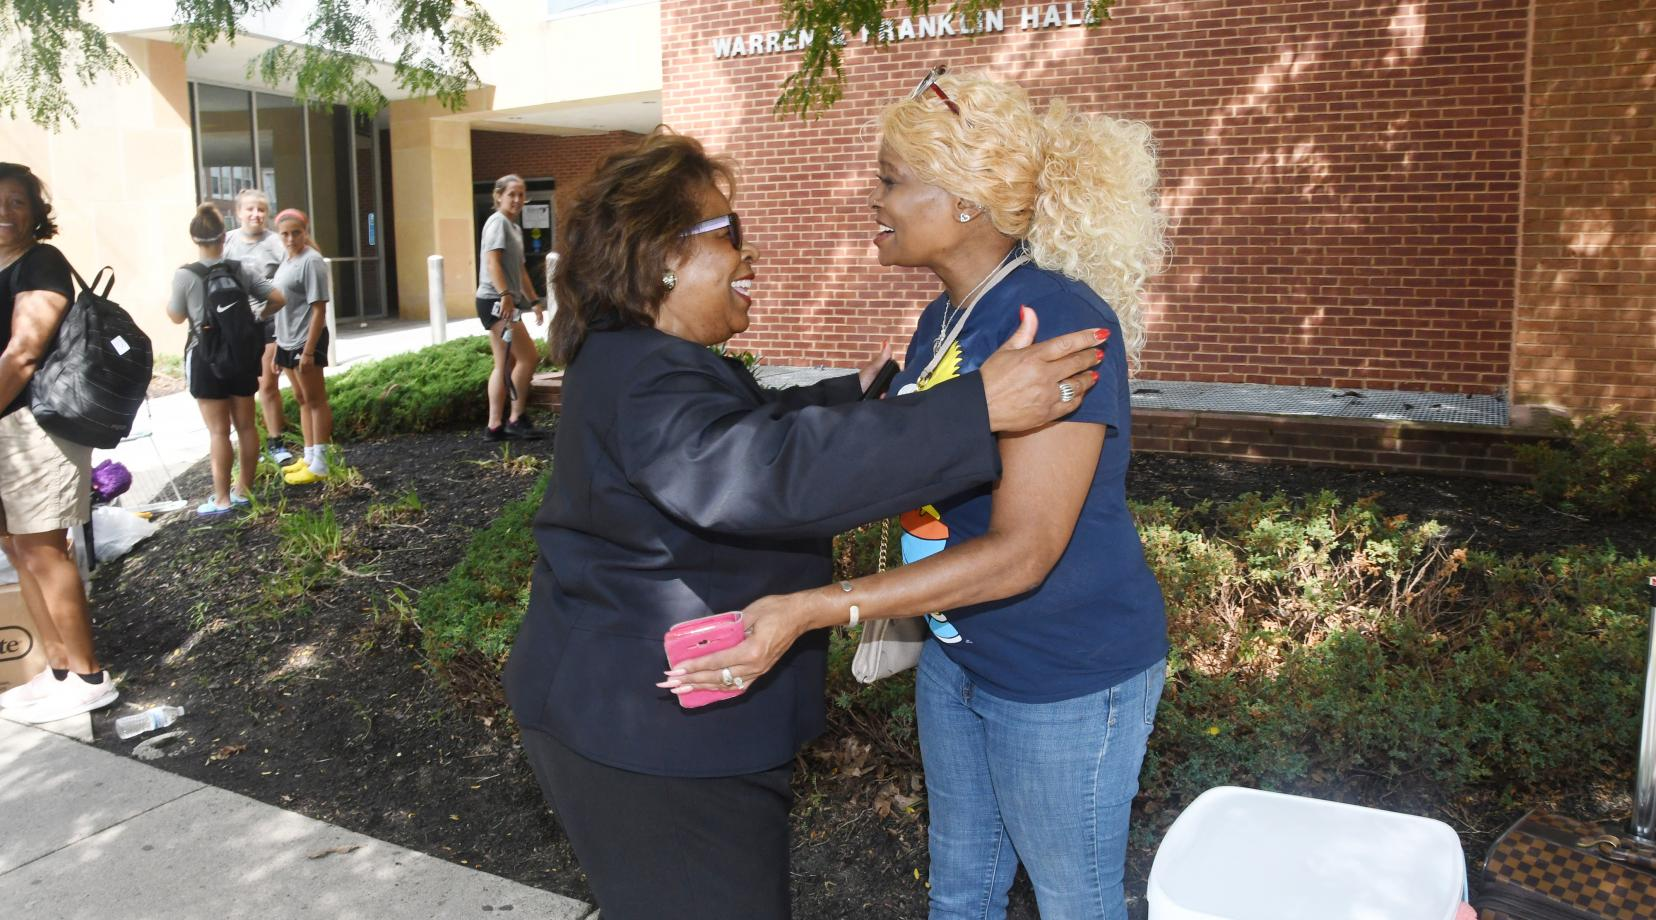 <p>DSU President Wilma Mishoe greets a parent during Move-In Day on Aug. 22 in front of Warren Franklin Residential Hall.</p>